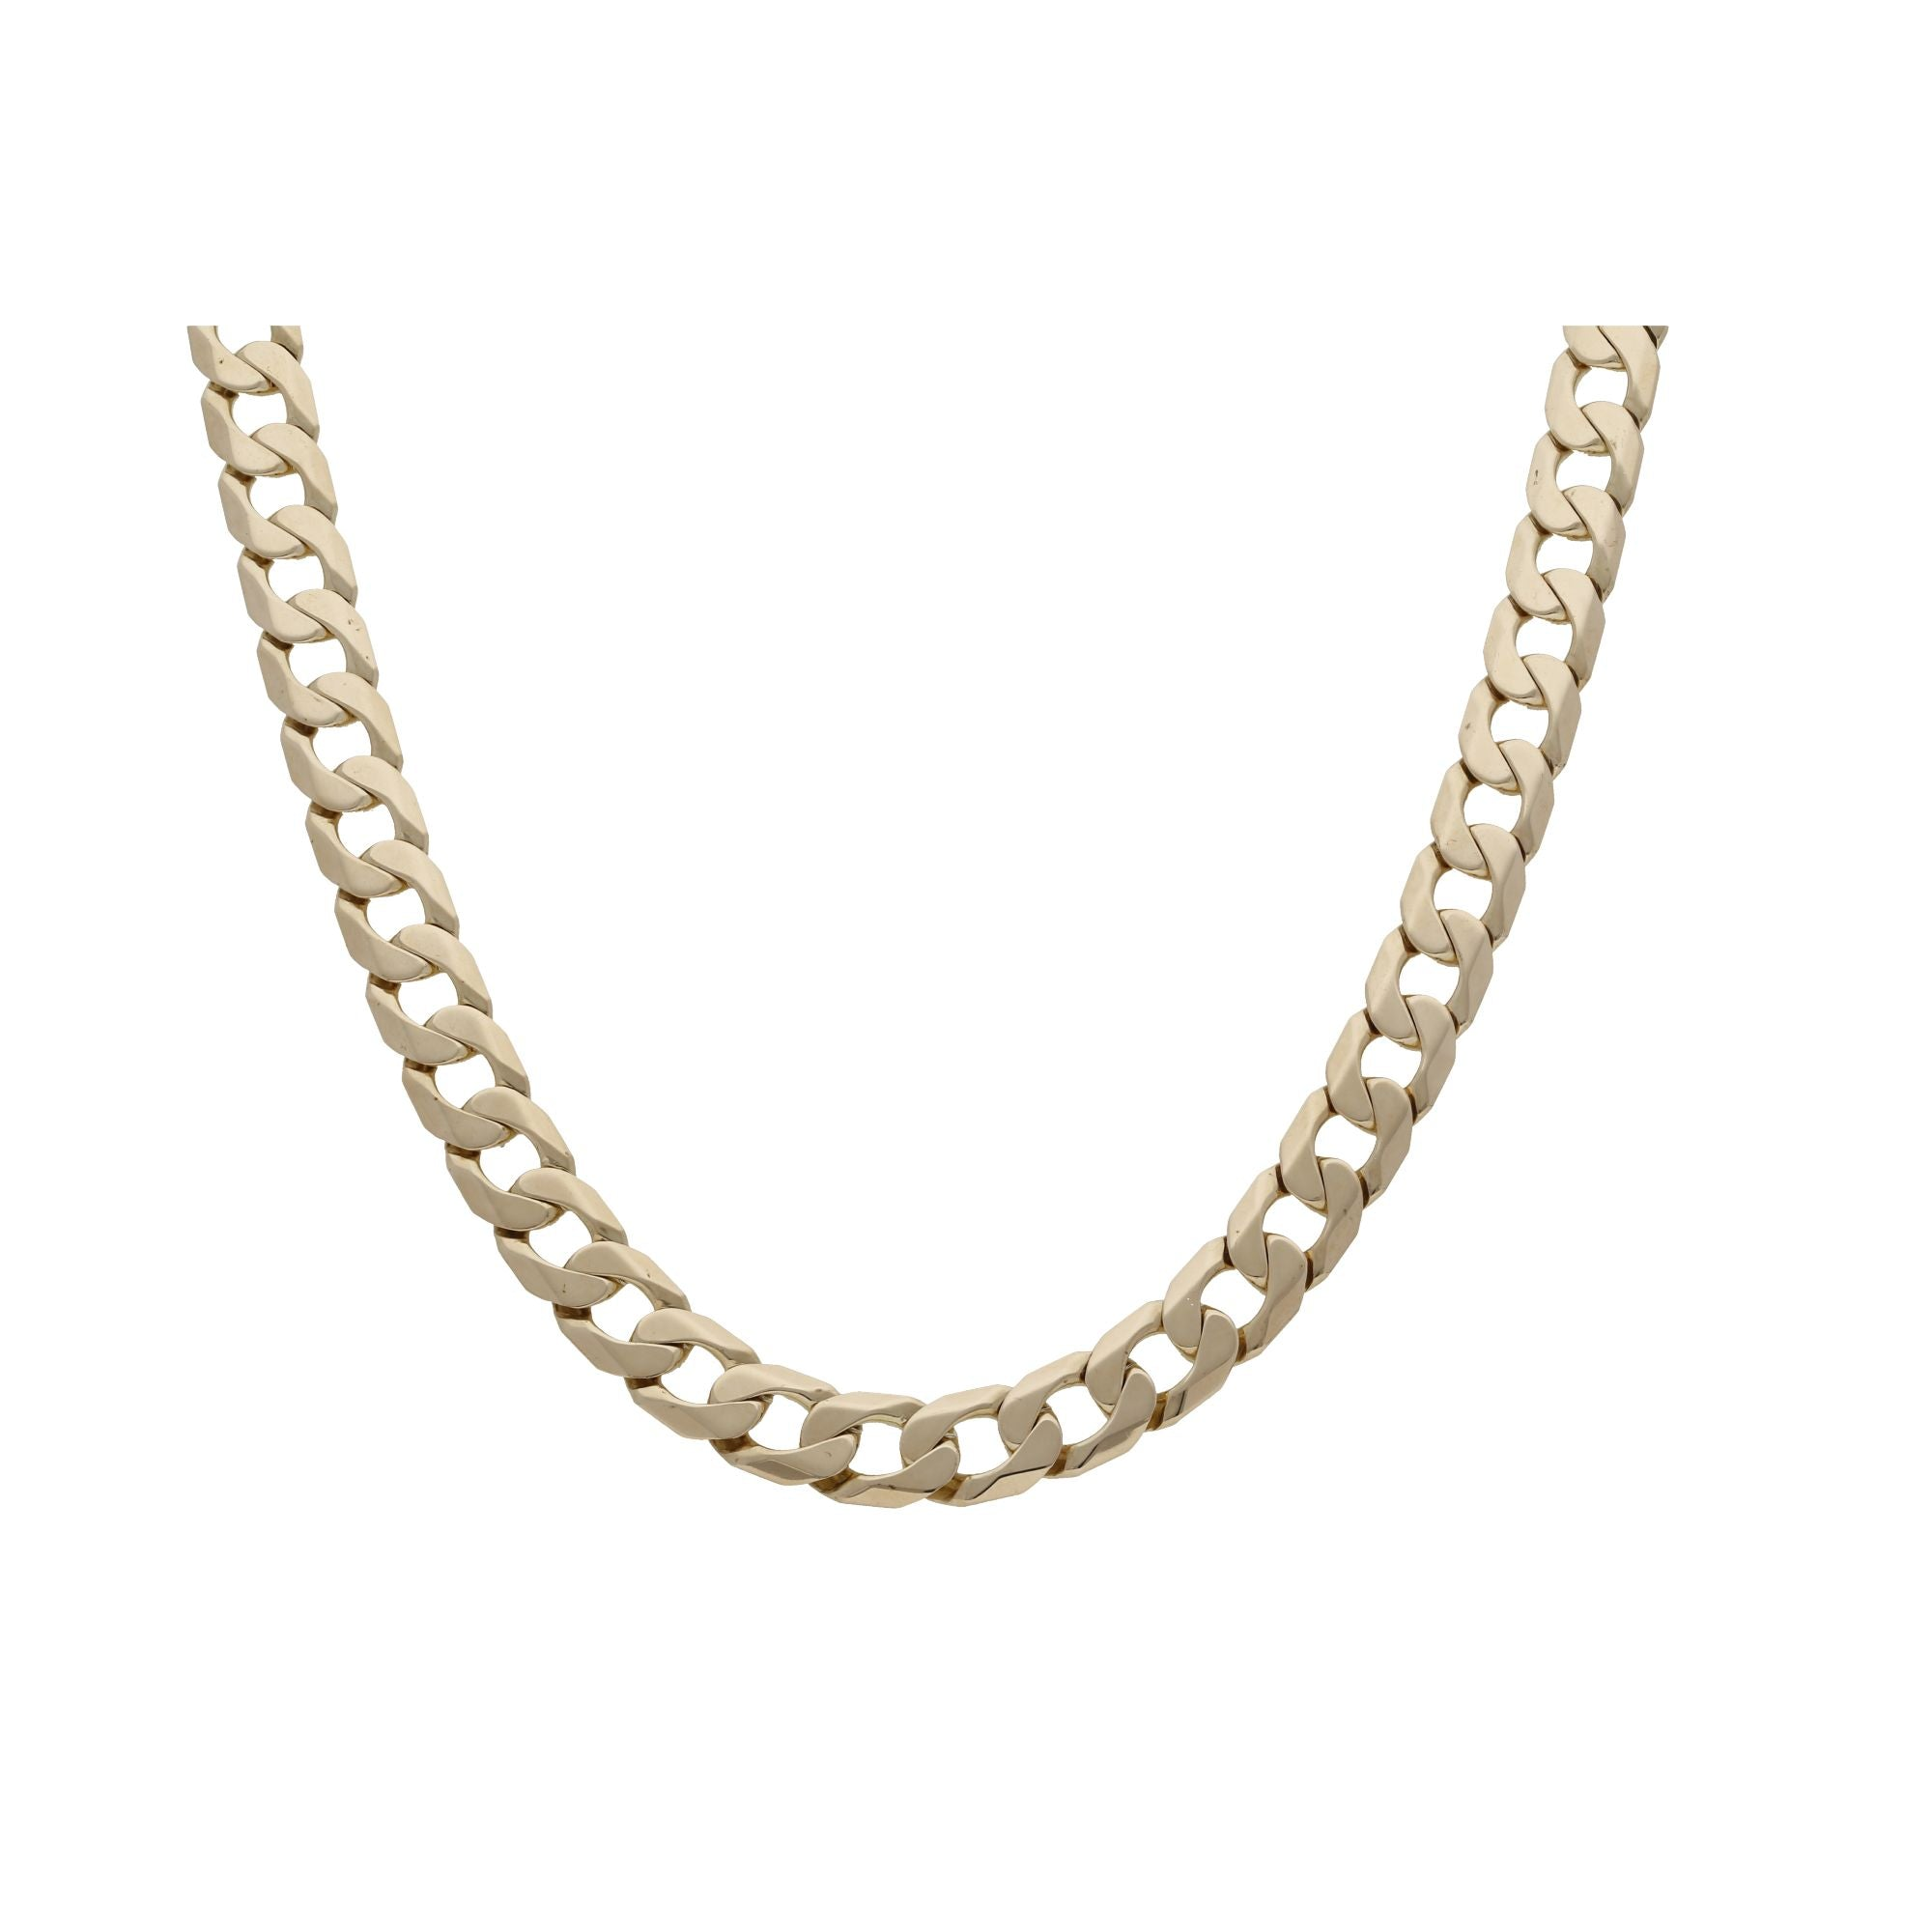 9ct Yellow Gold Curb Chain 20 inches